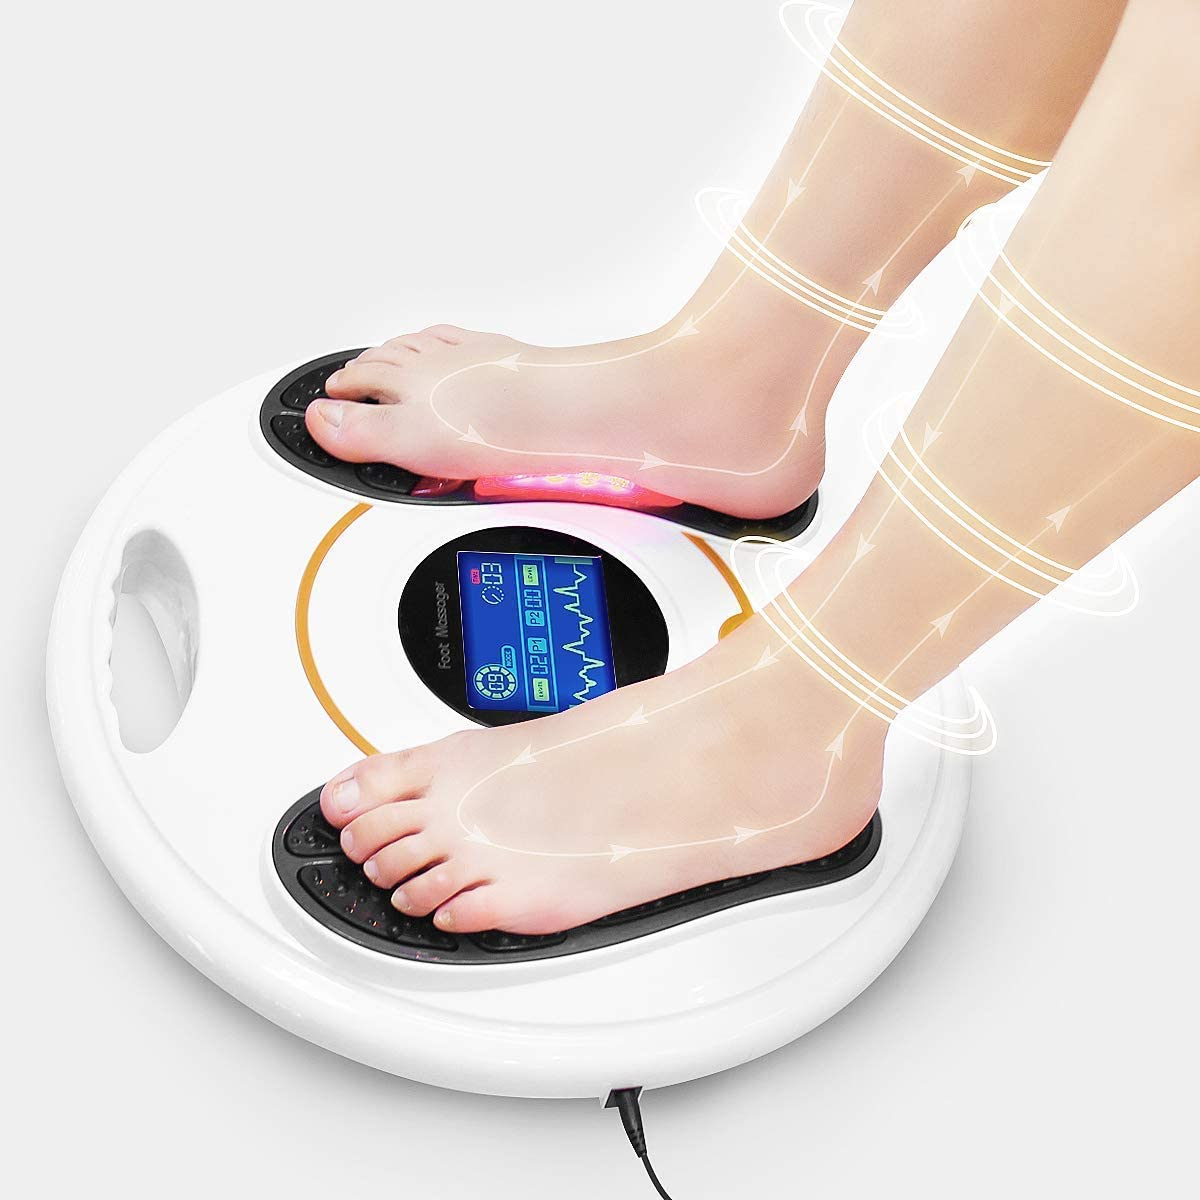 Foot Circulation Plus (FSA or HSA Eligible) - Medic Foot Massager Machine with TENS Unit, EMS (Electrical Muscles Stimulator) Feet Legs Health for Neuropathy, Diabetes, Relieve Pains and Cramps, RLS: Health & Personal Care